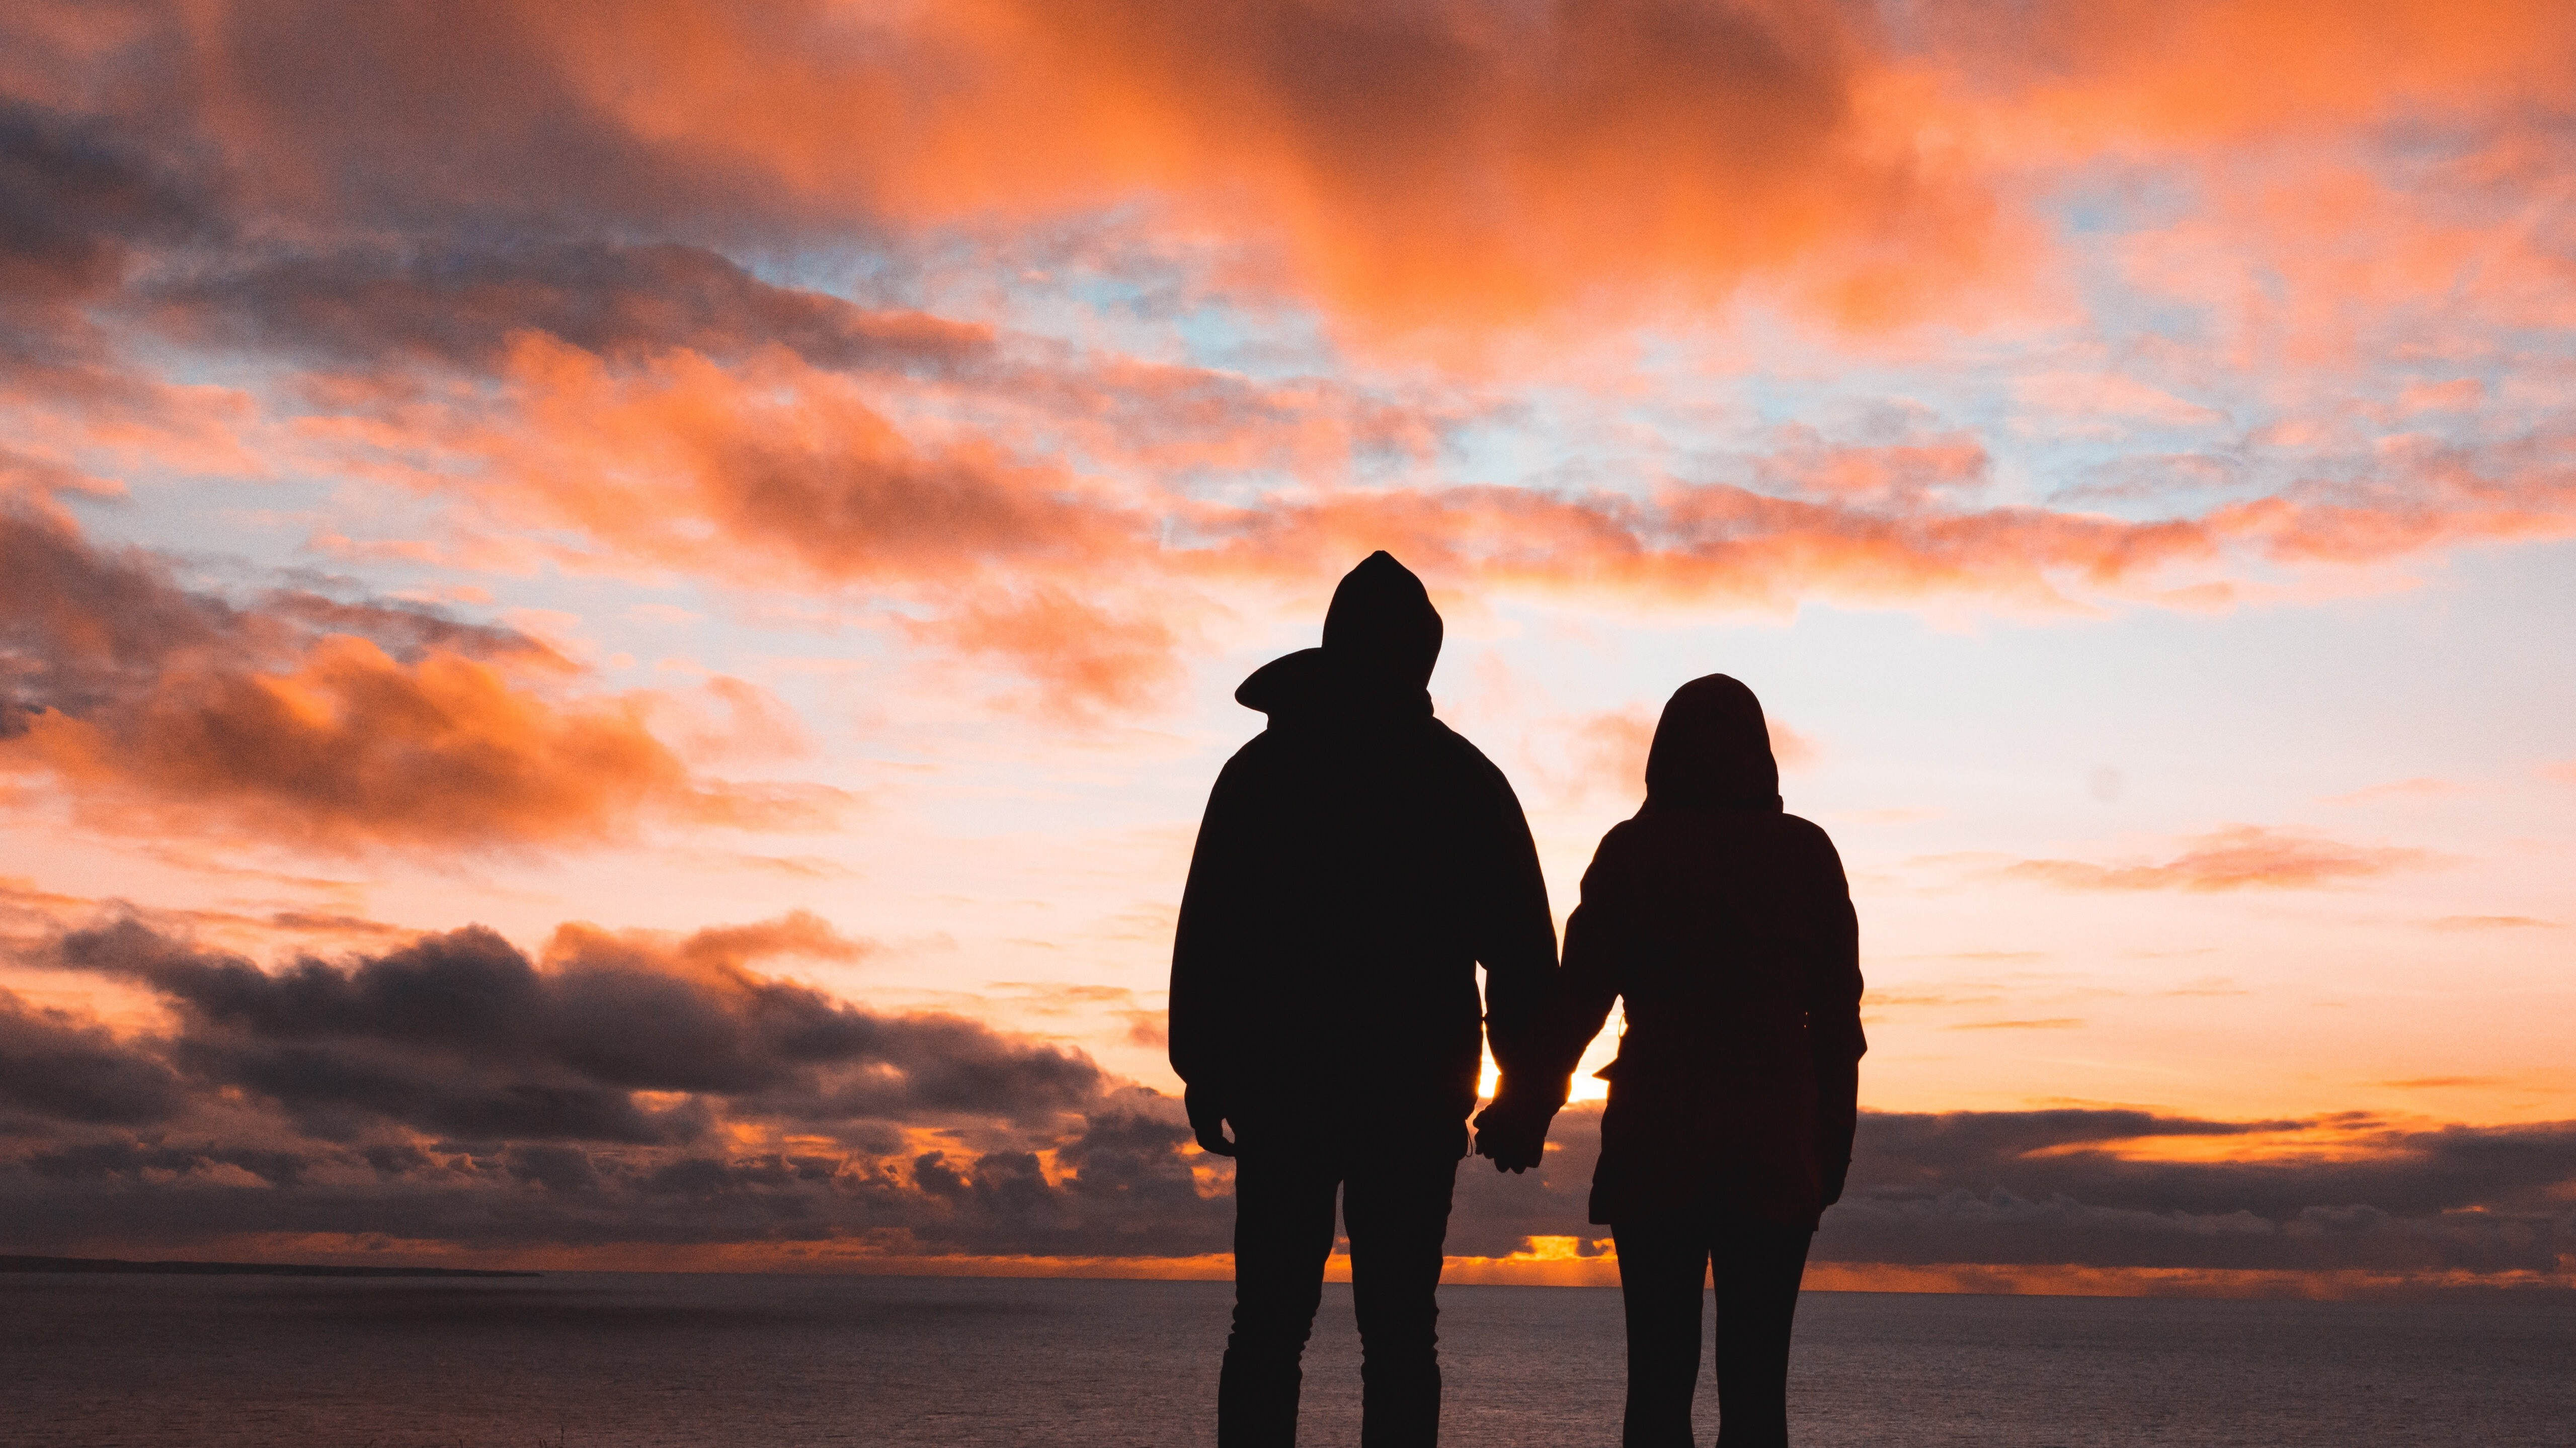 Lovable Couple At Sunset Time 5k Wallpaper Hd Wallpapers